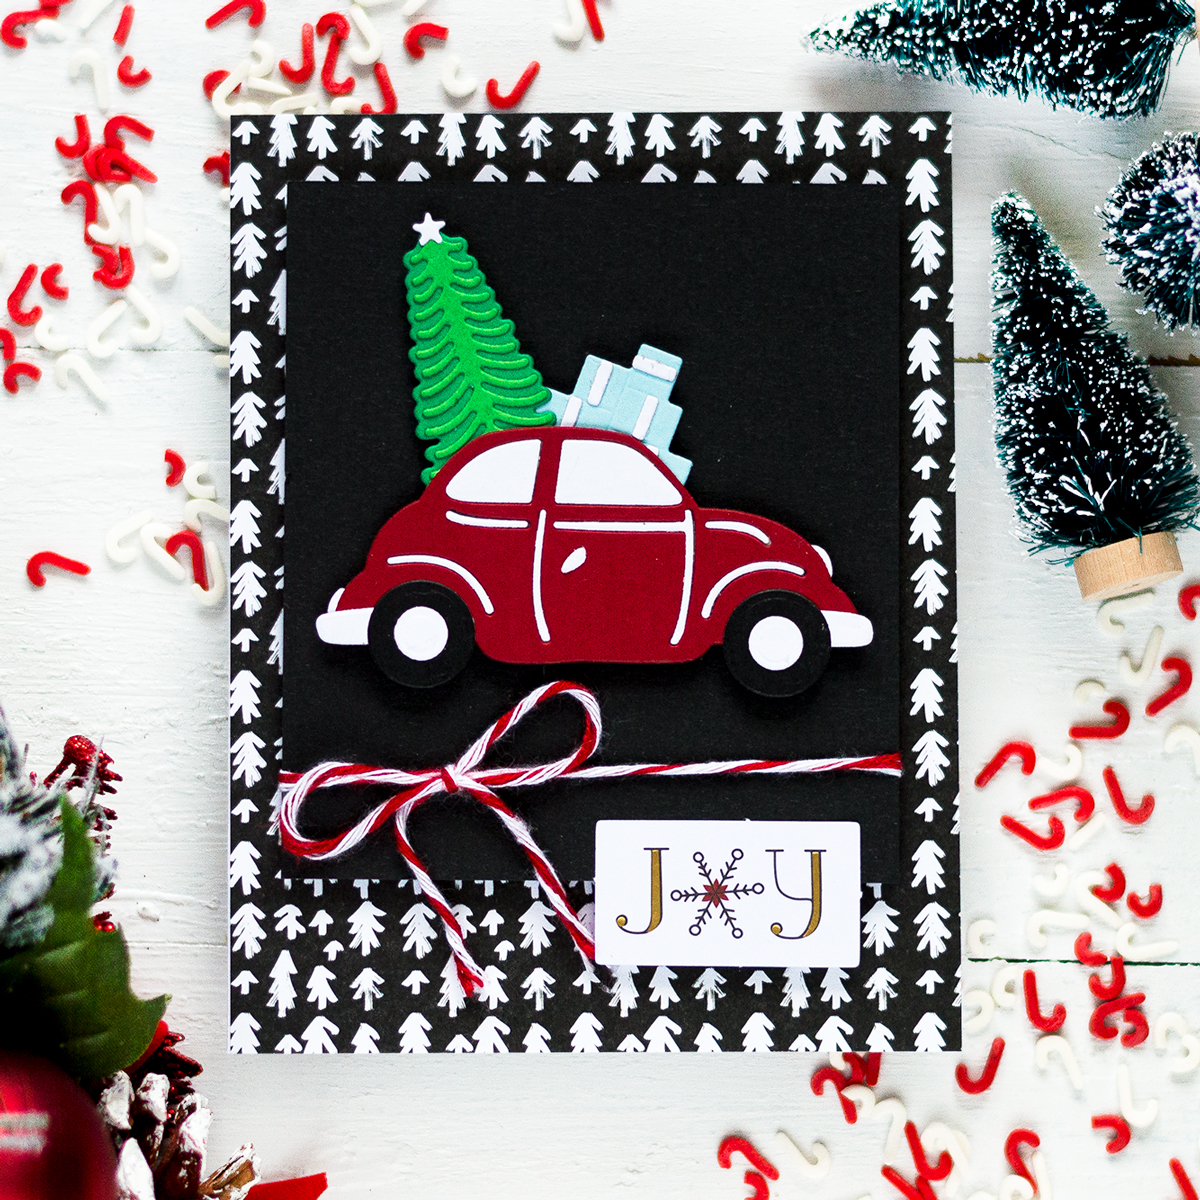 Spellbinders Merry Everything Christmas Card Kit. Card by Svitlana Shayevich